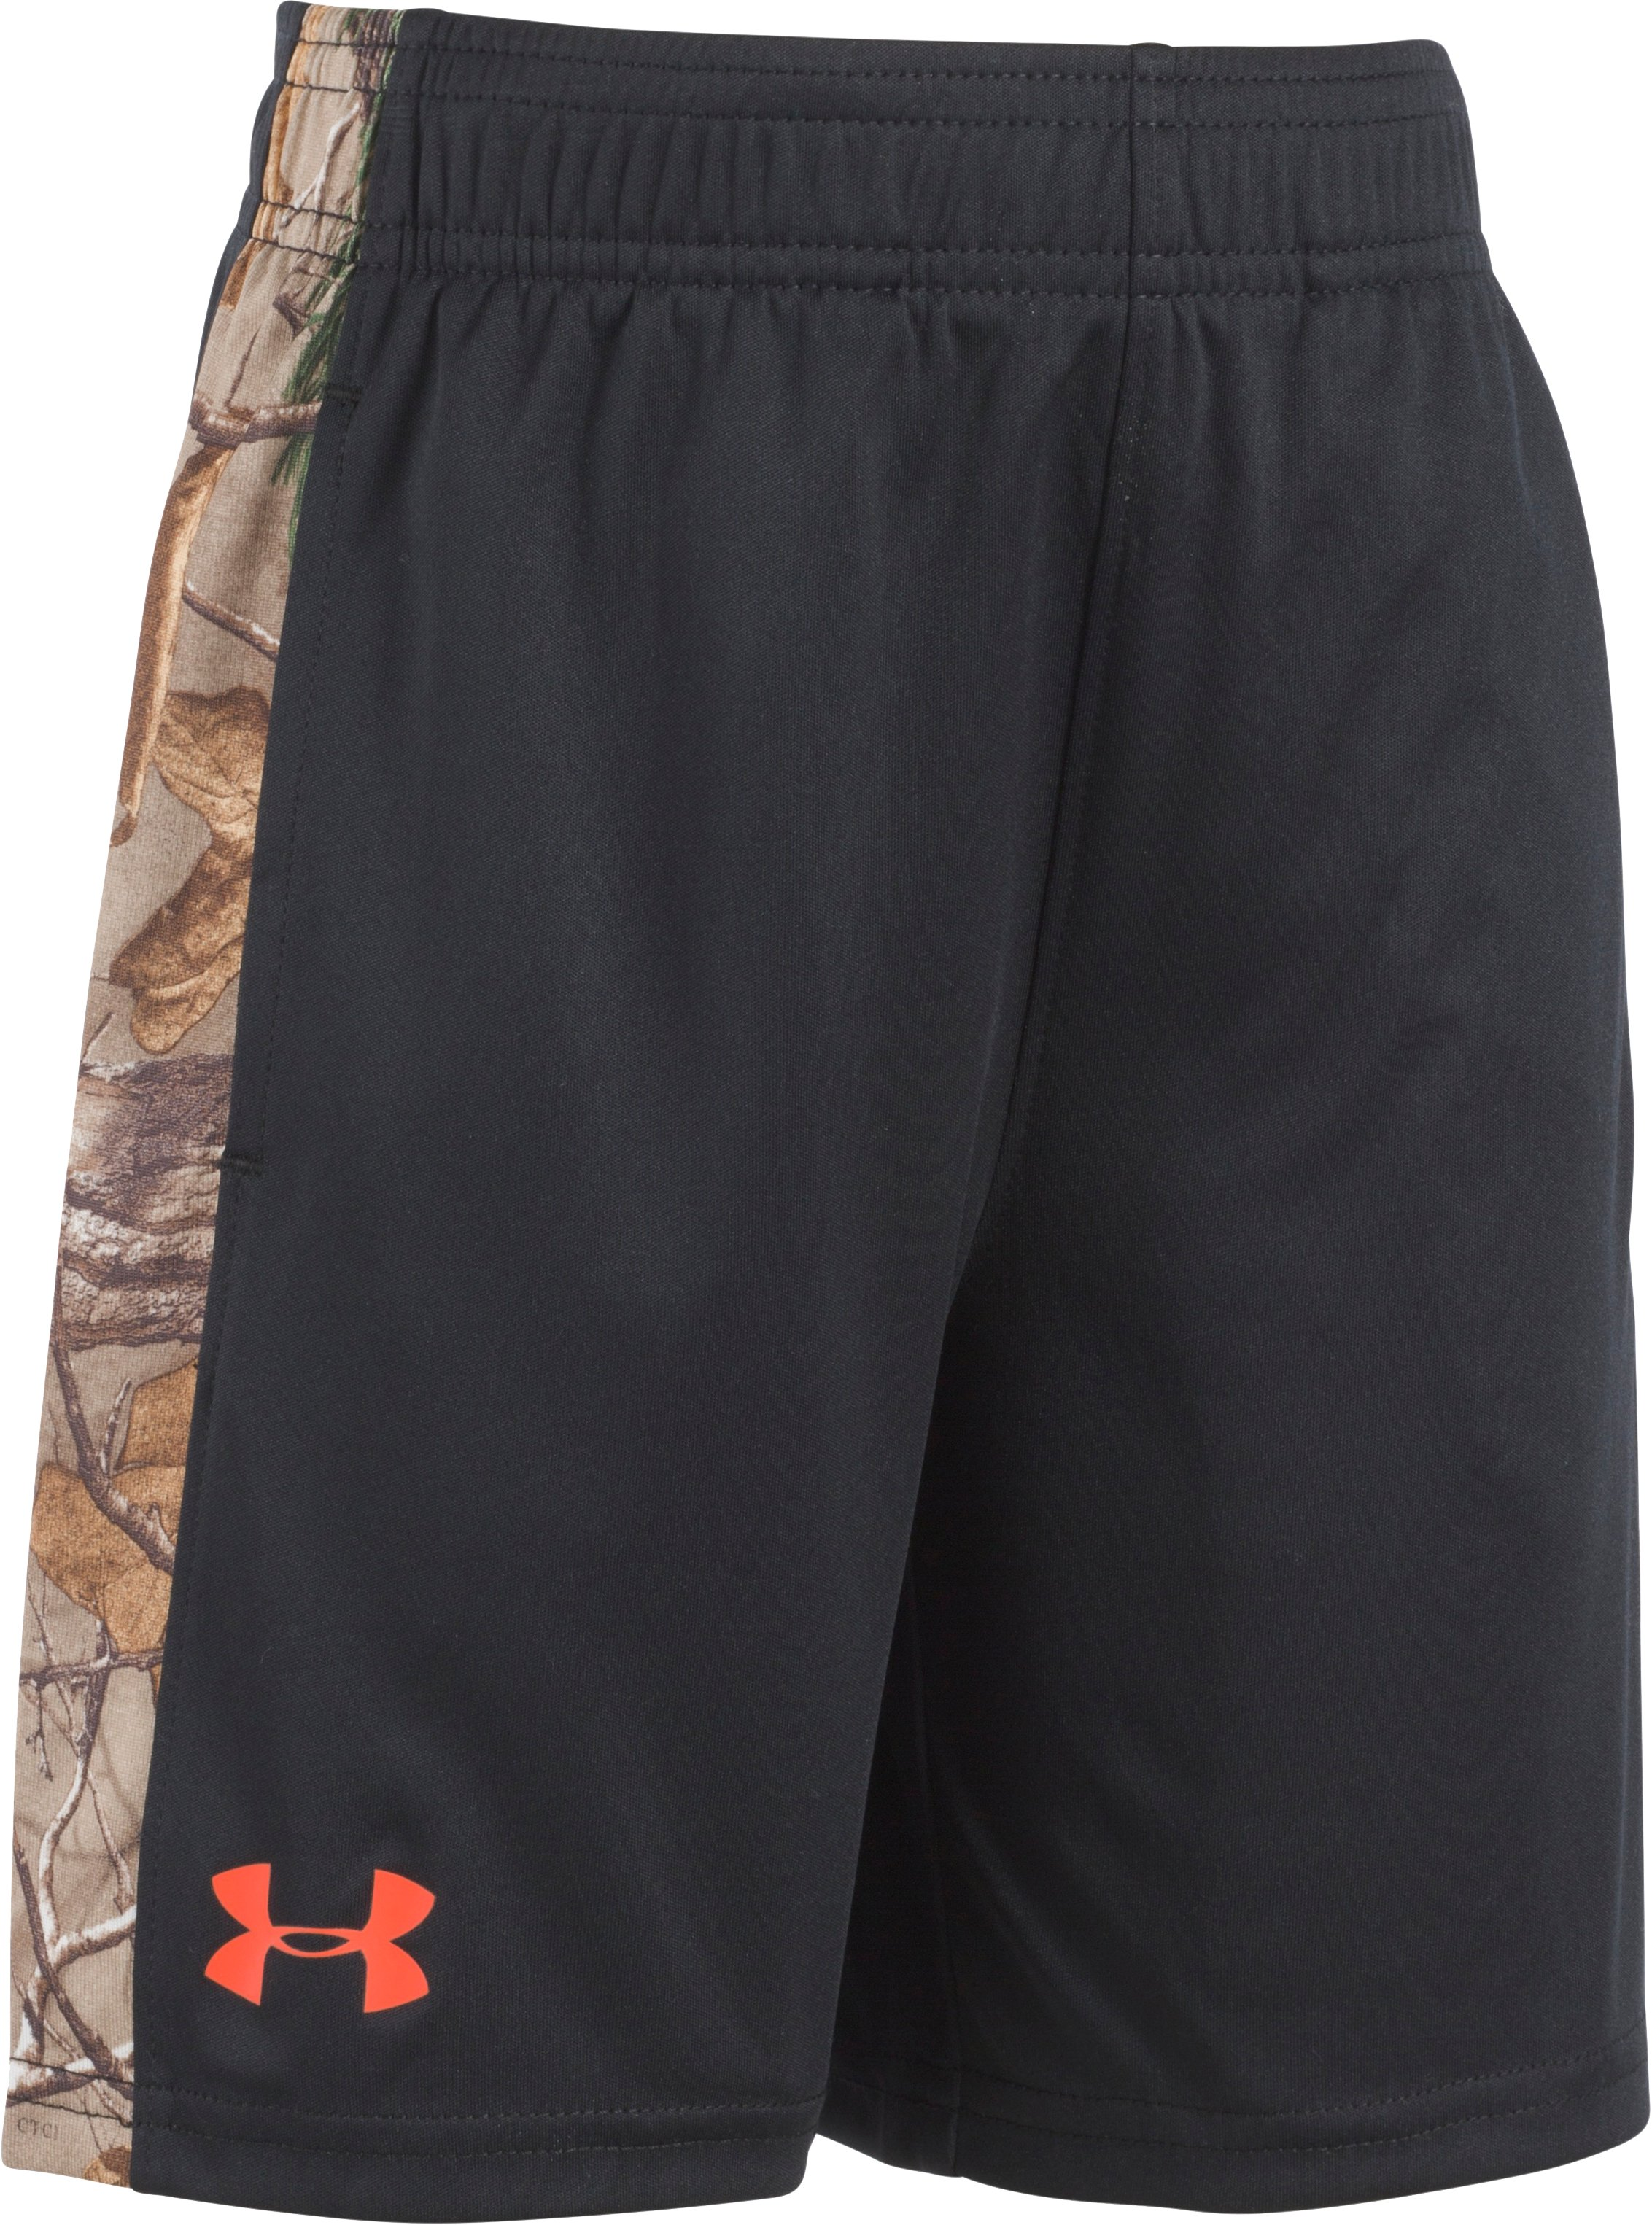 Boys' Toddler UA Camo Eliminator Shorts, Assorted, Laydown